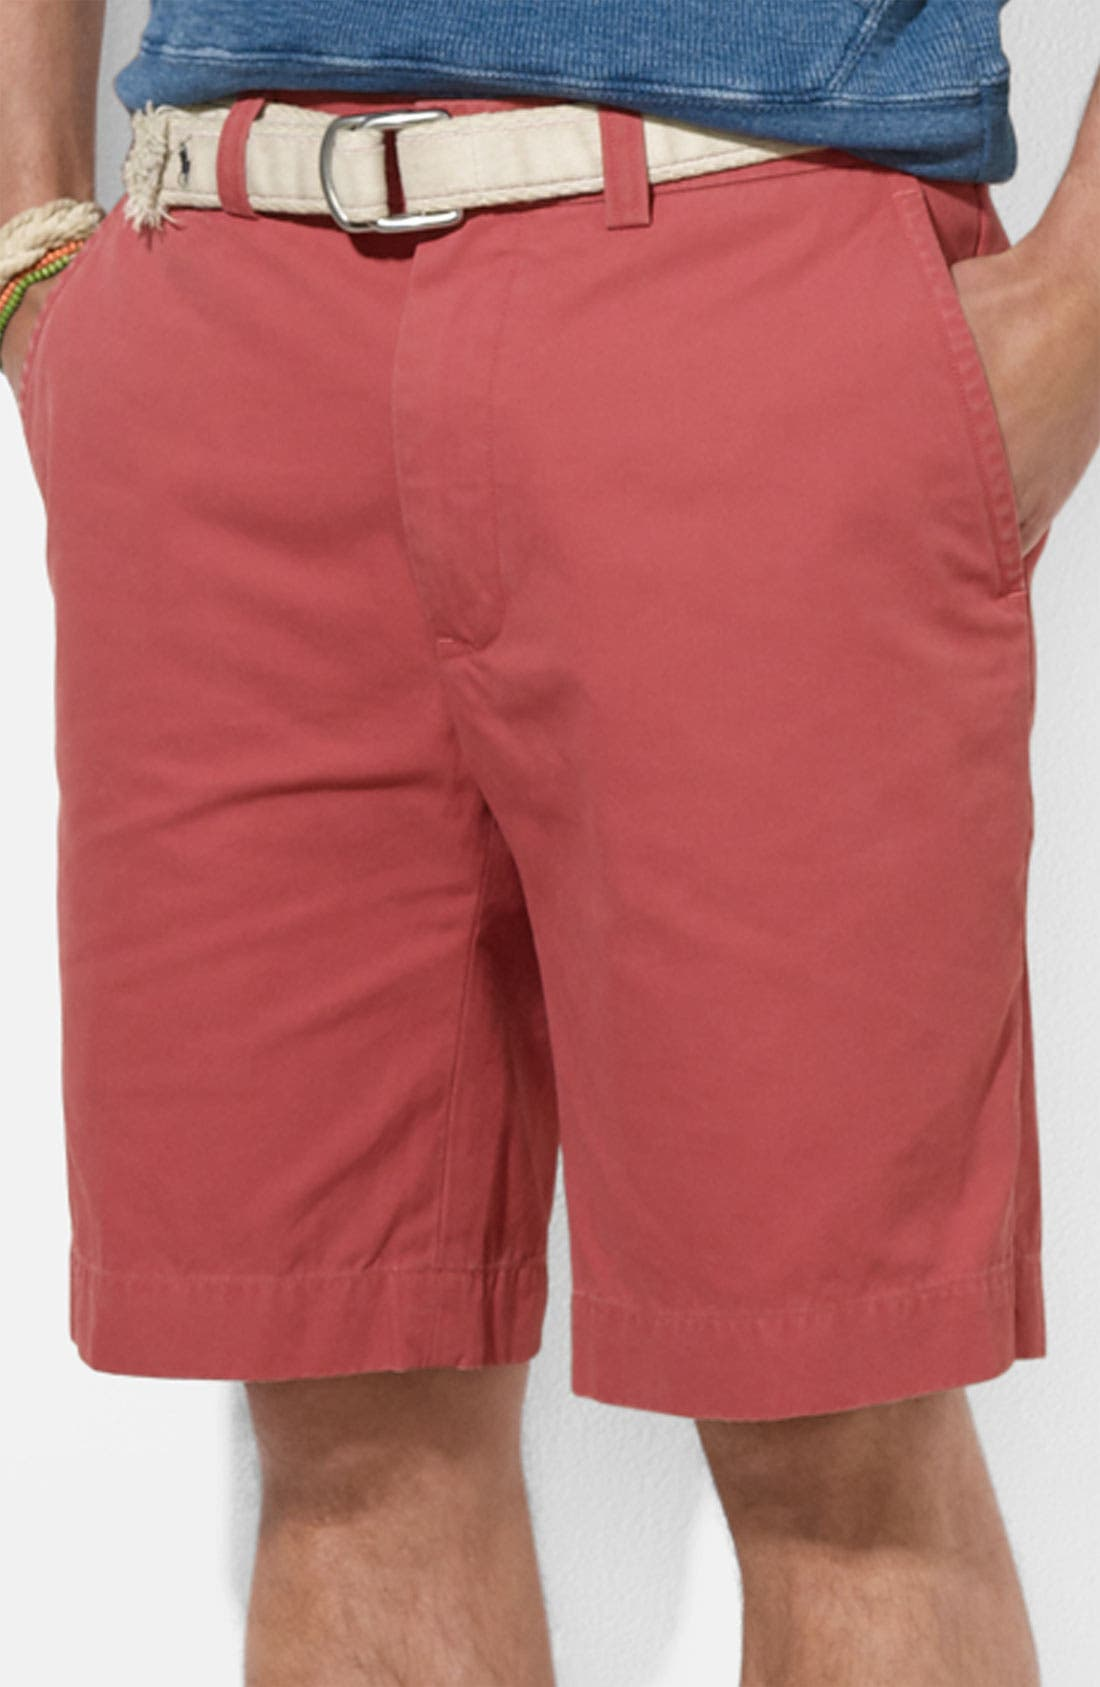 Alternate Image 1 Selected - Polo Ralph Lauren 'G.I.' Classic Fit Shorts